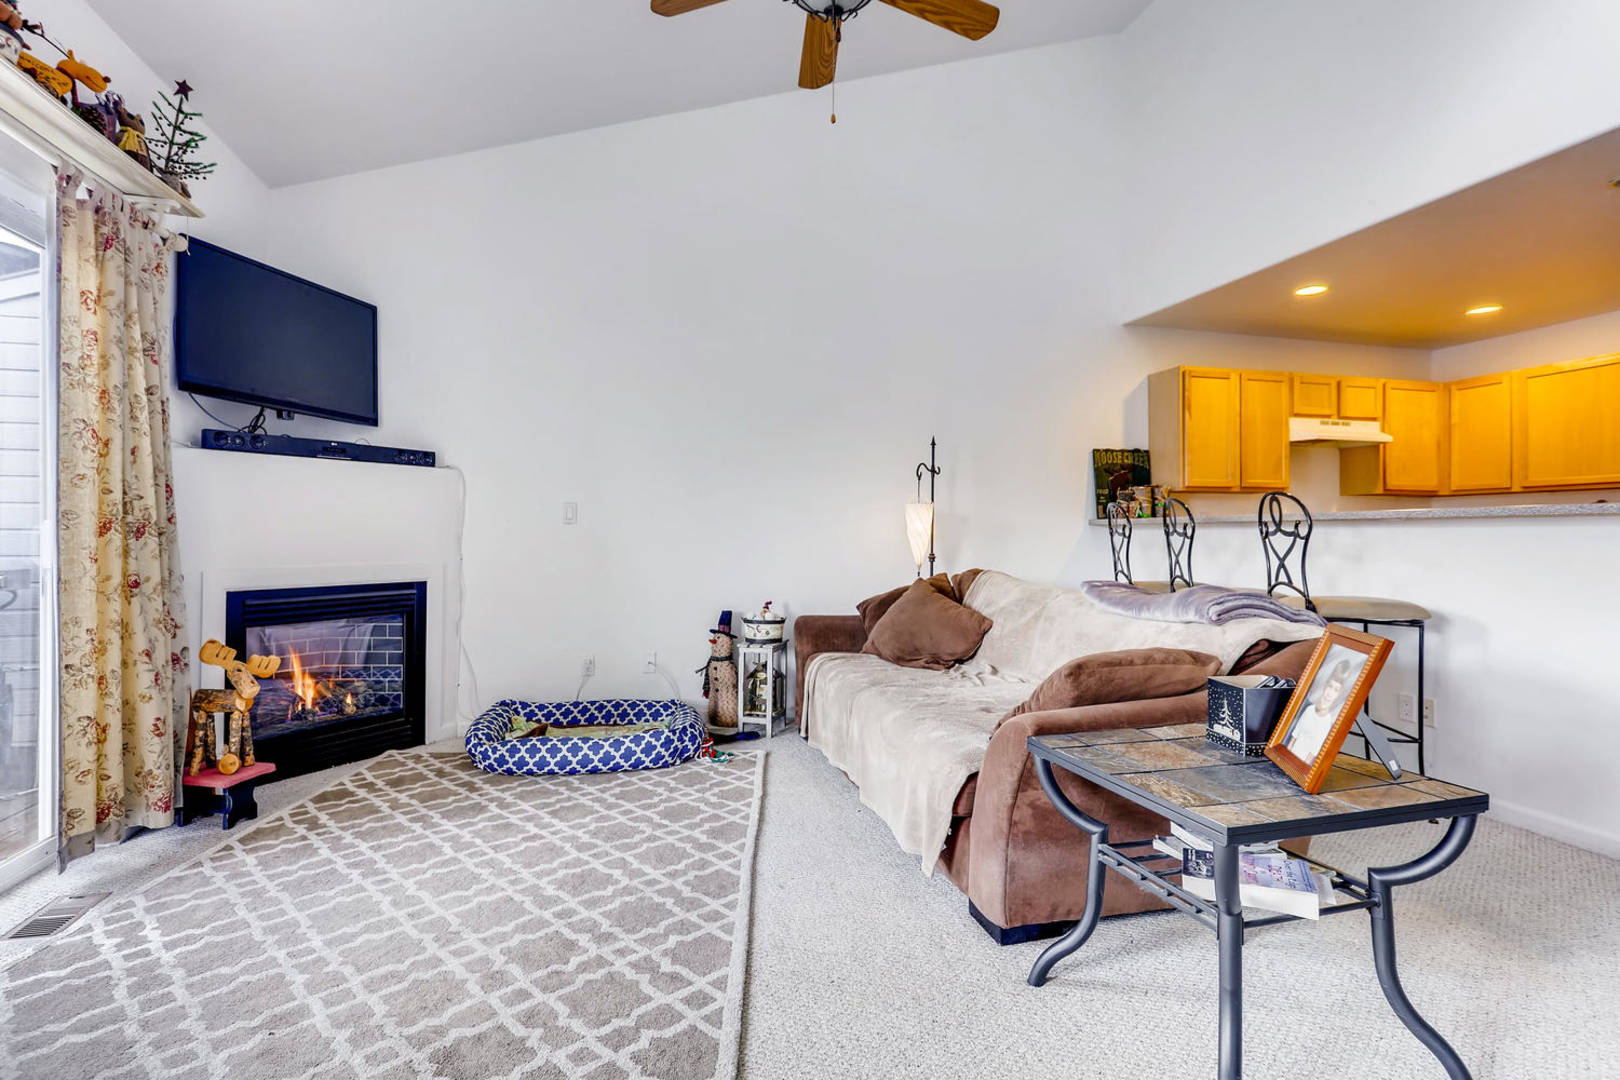 112-4 Quail Circle Gypsum, CO 81637